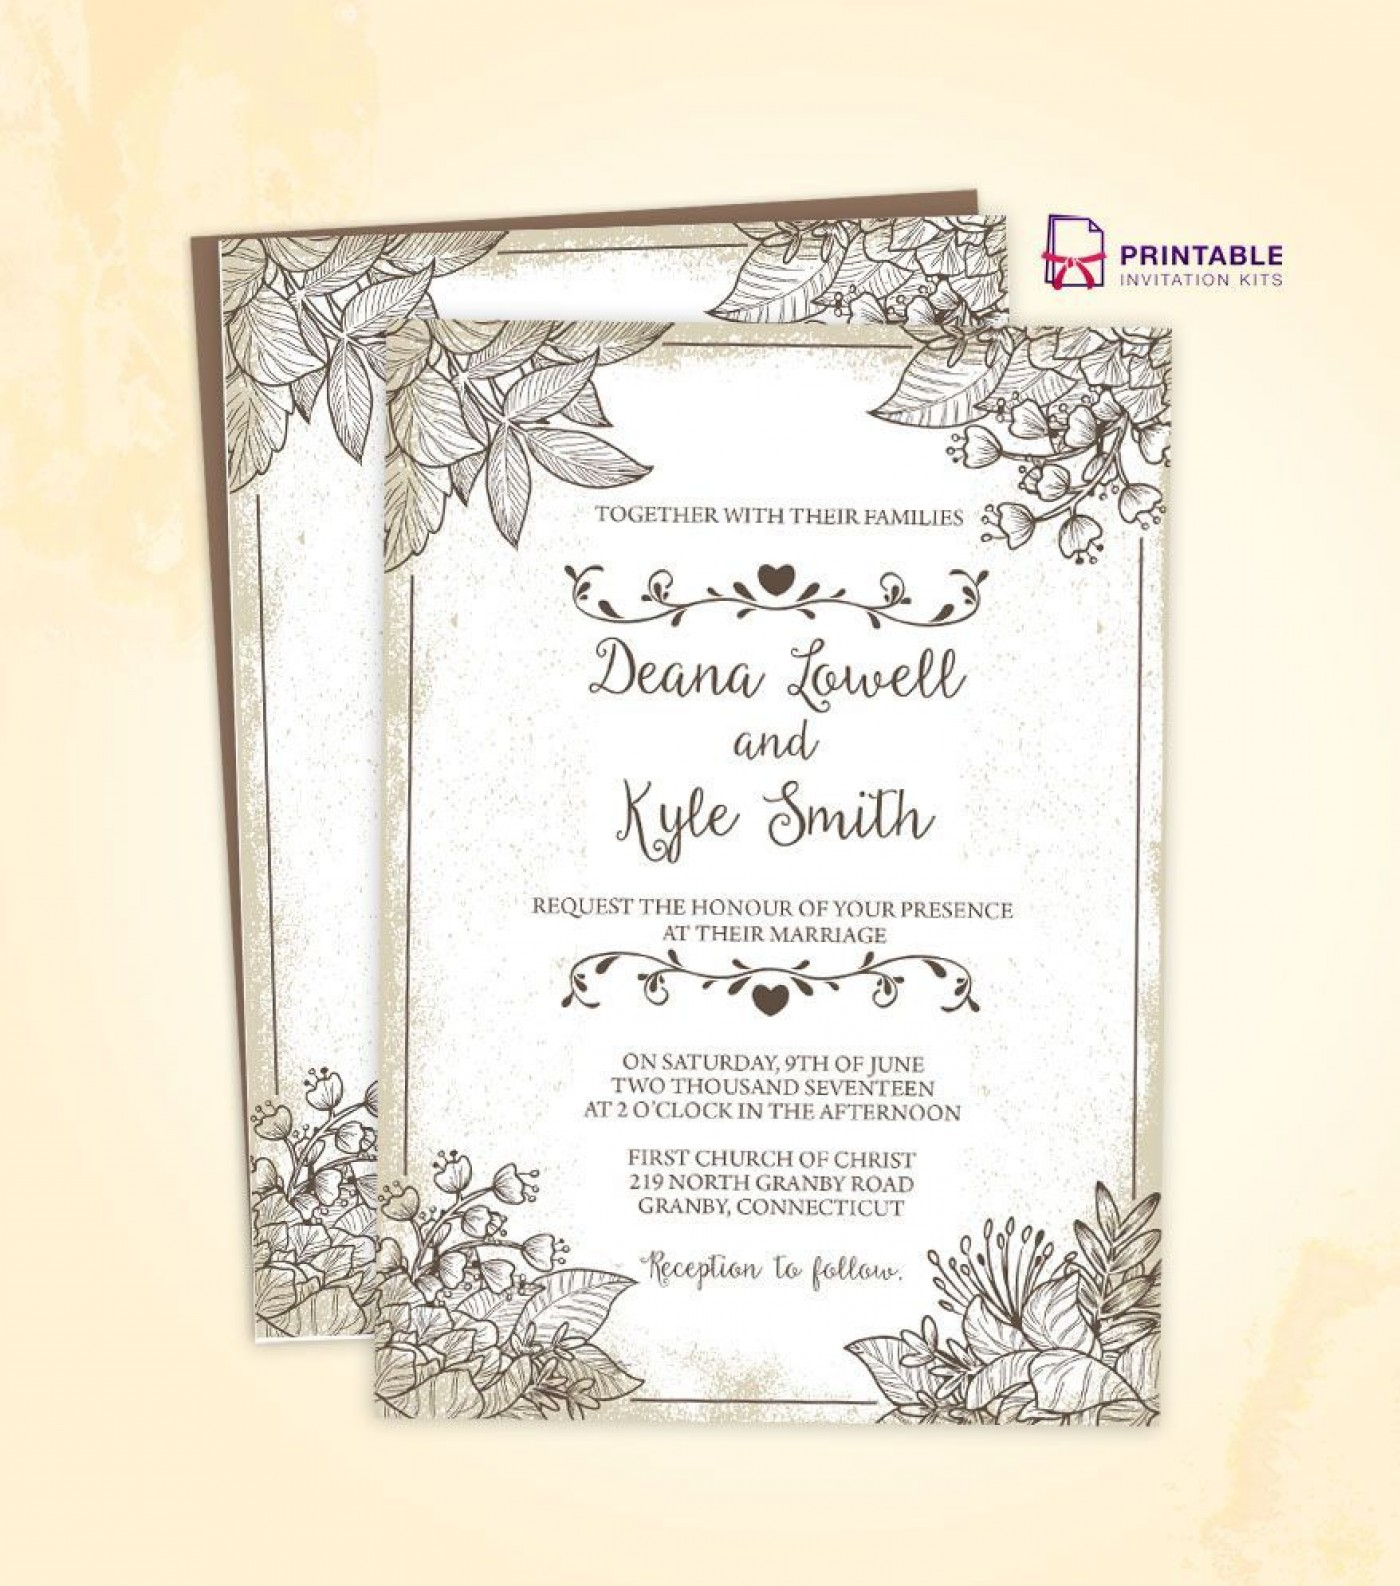 001 Stunning Free Download Marriage Invitation Template Photo  Card Design Psd After Effect1400